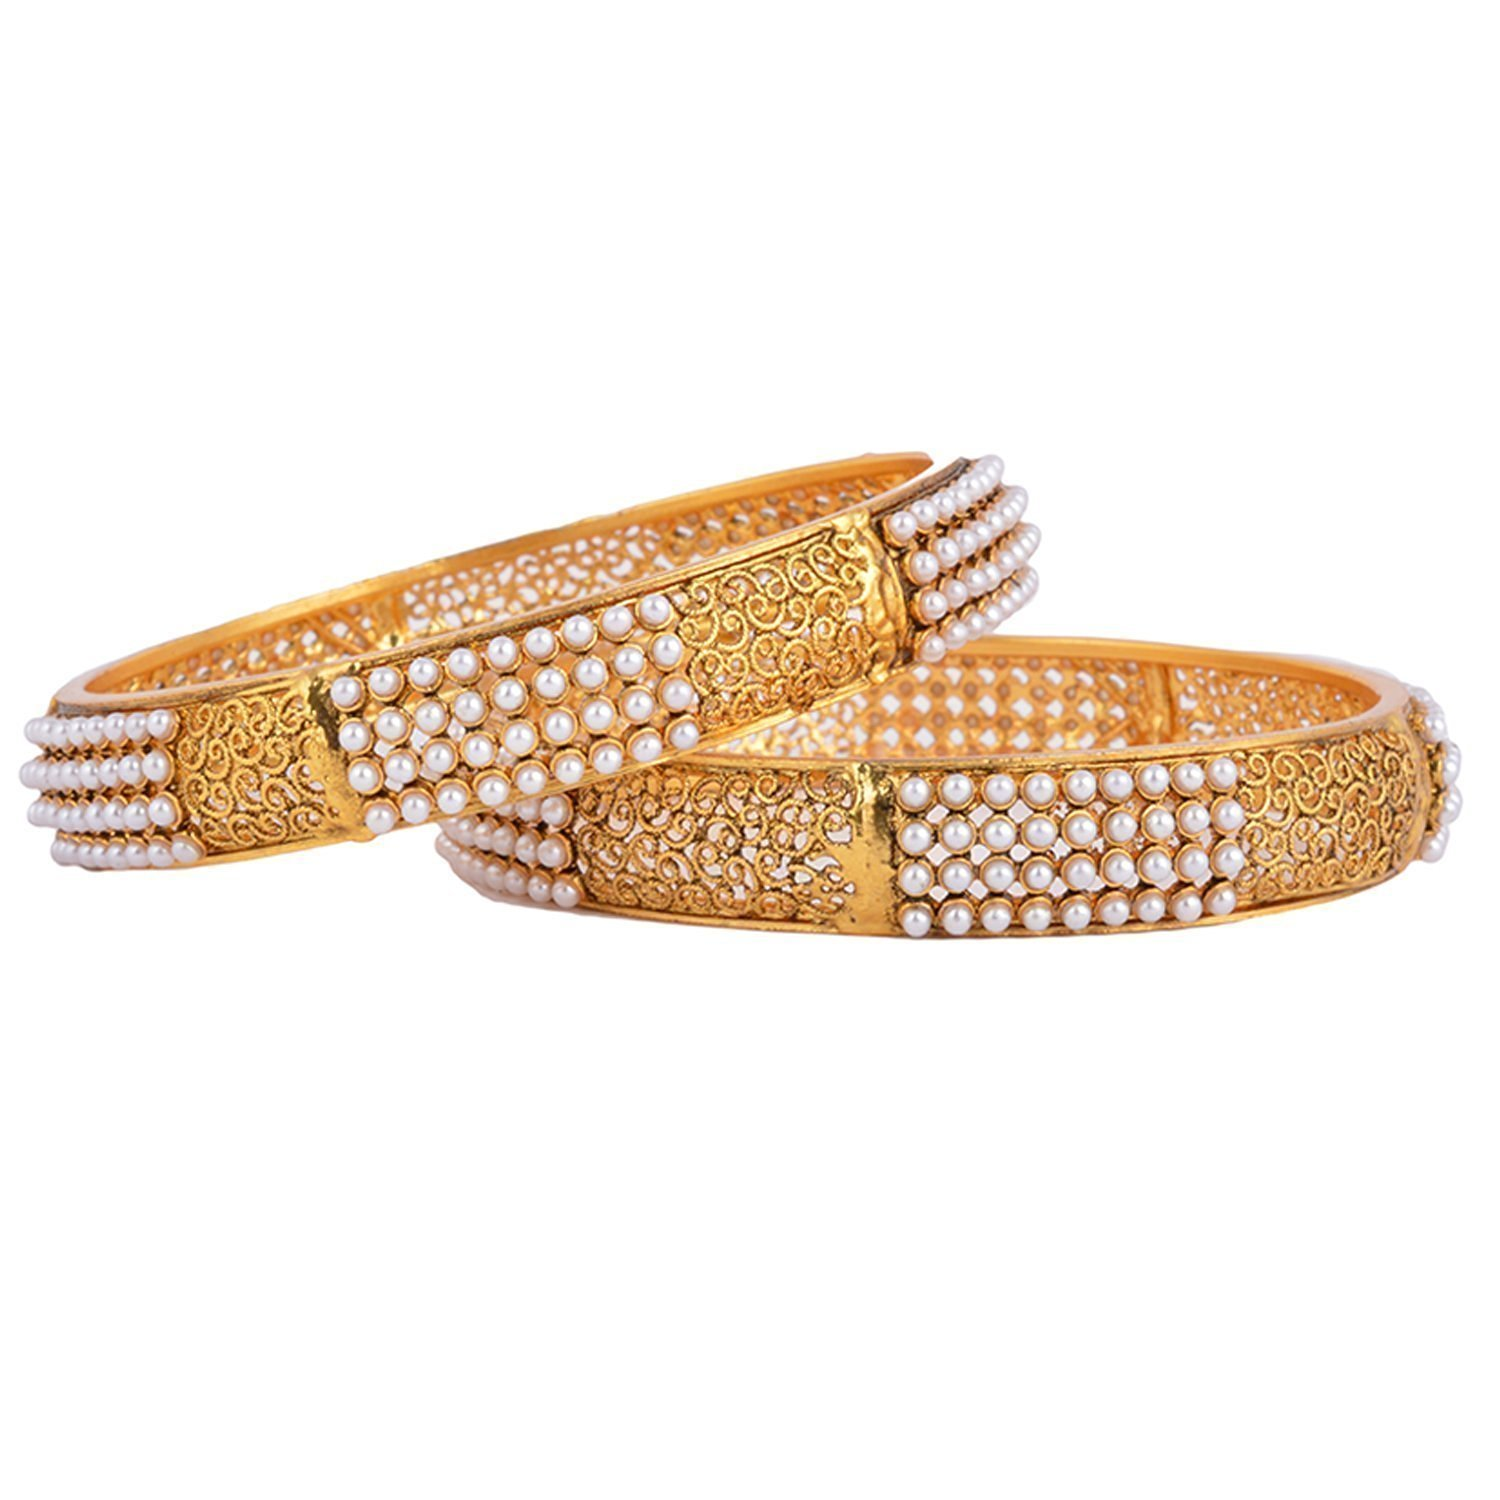 bluestone designs bangles ladies online buy diamond the s women bangle jewellery in elin india pics